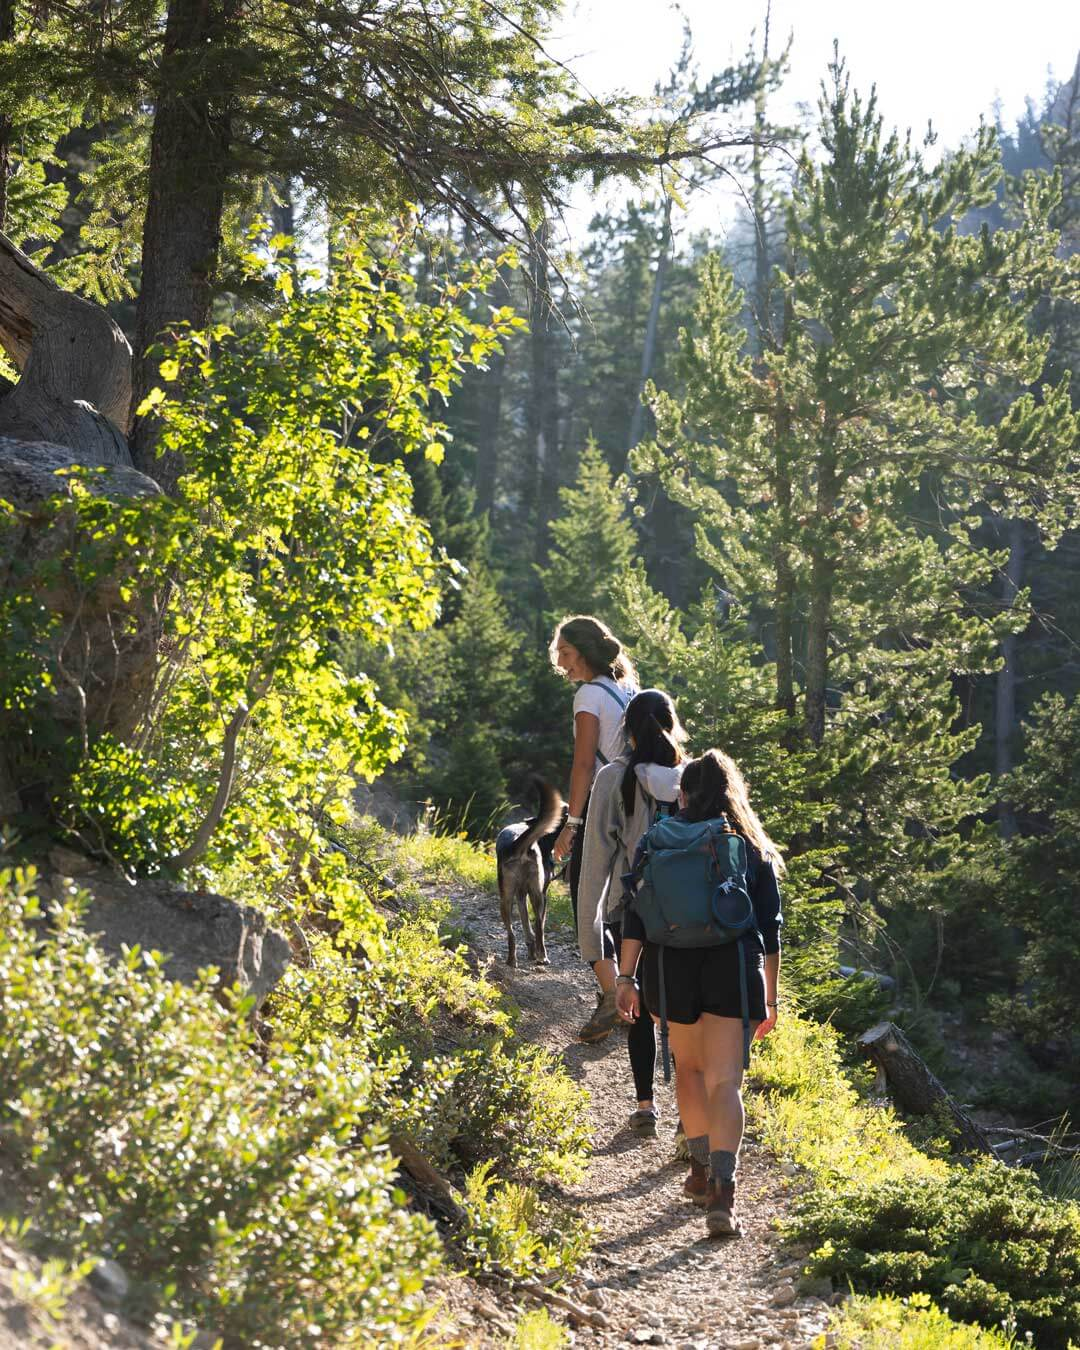 A young family – A mother, two daughters, and their dog – are hiking through a forest in the northwest United States.